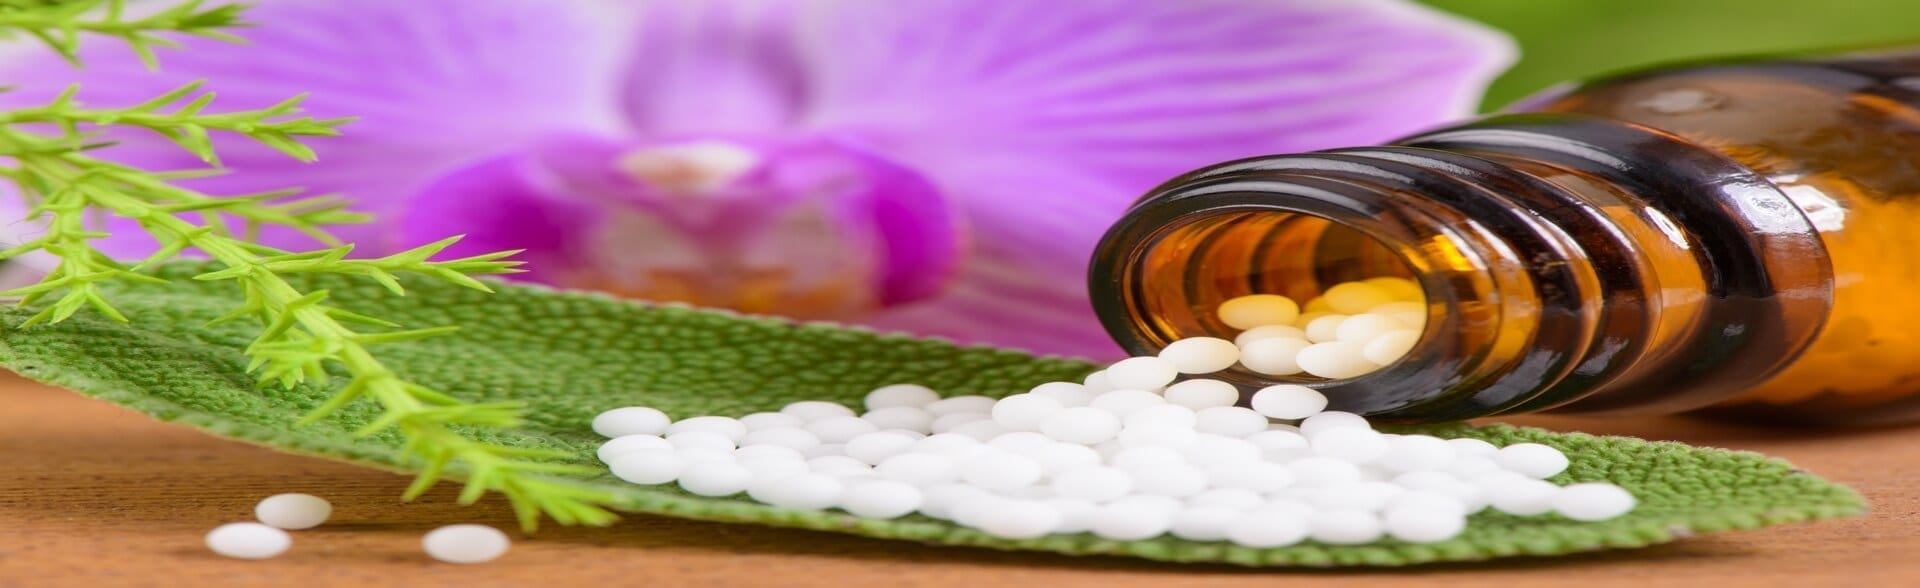 GetNaturopathic Homeopathy: Valid or Placebo? Dr. Jiwani